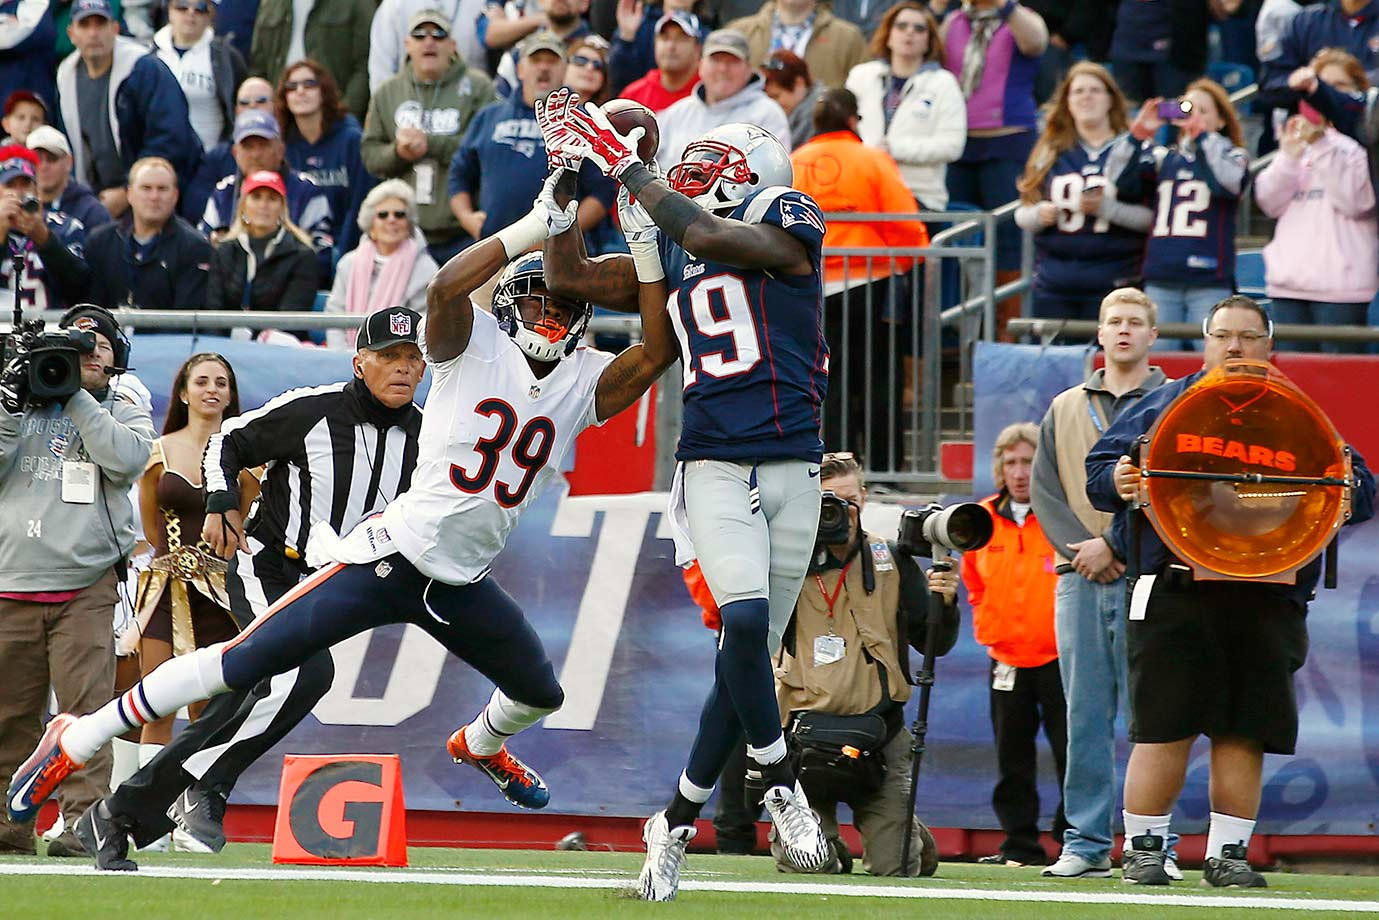 The second major cut of the offseason for the Patriots, LaFell failed to become an impact player in his second season with the team. The 29-year-old played in 11 games, starting seven of them and had 37 receptions for 515 yards. It was the first season in his six-year career in which he did not score a touchdown.